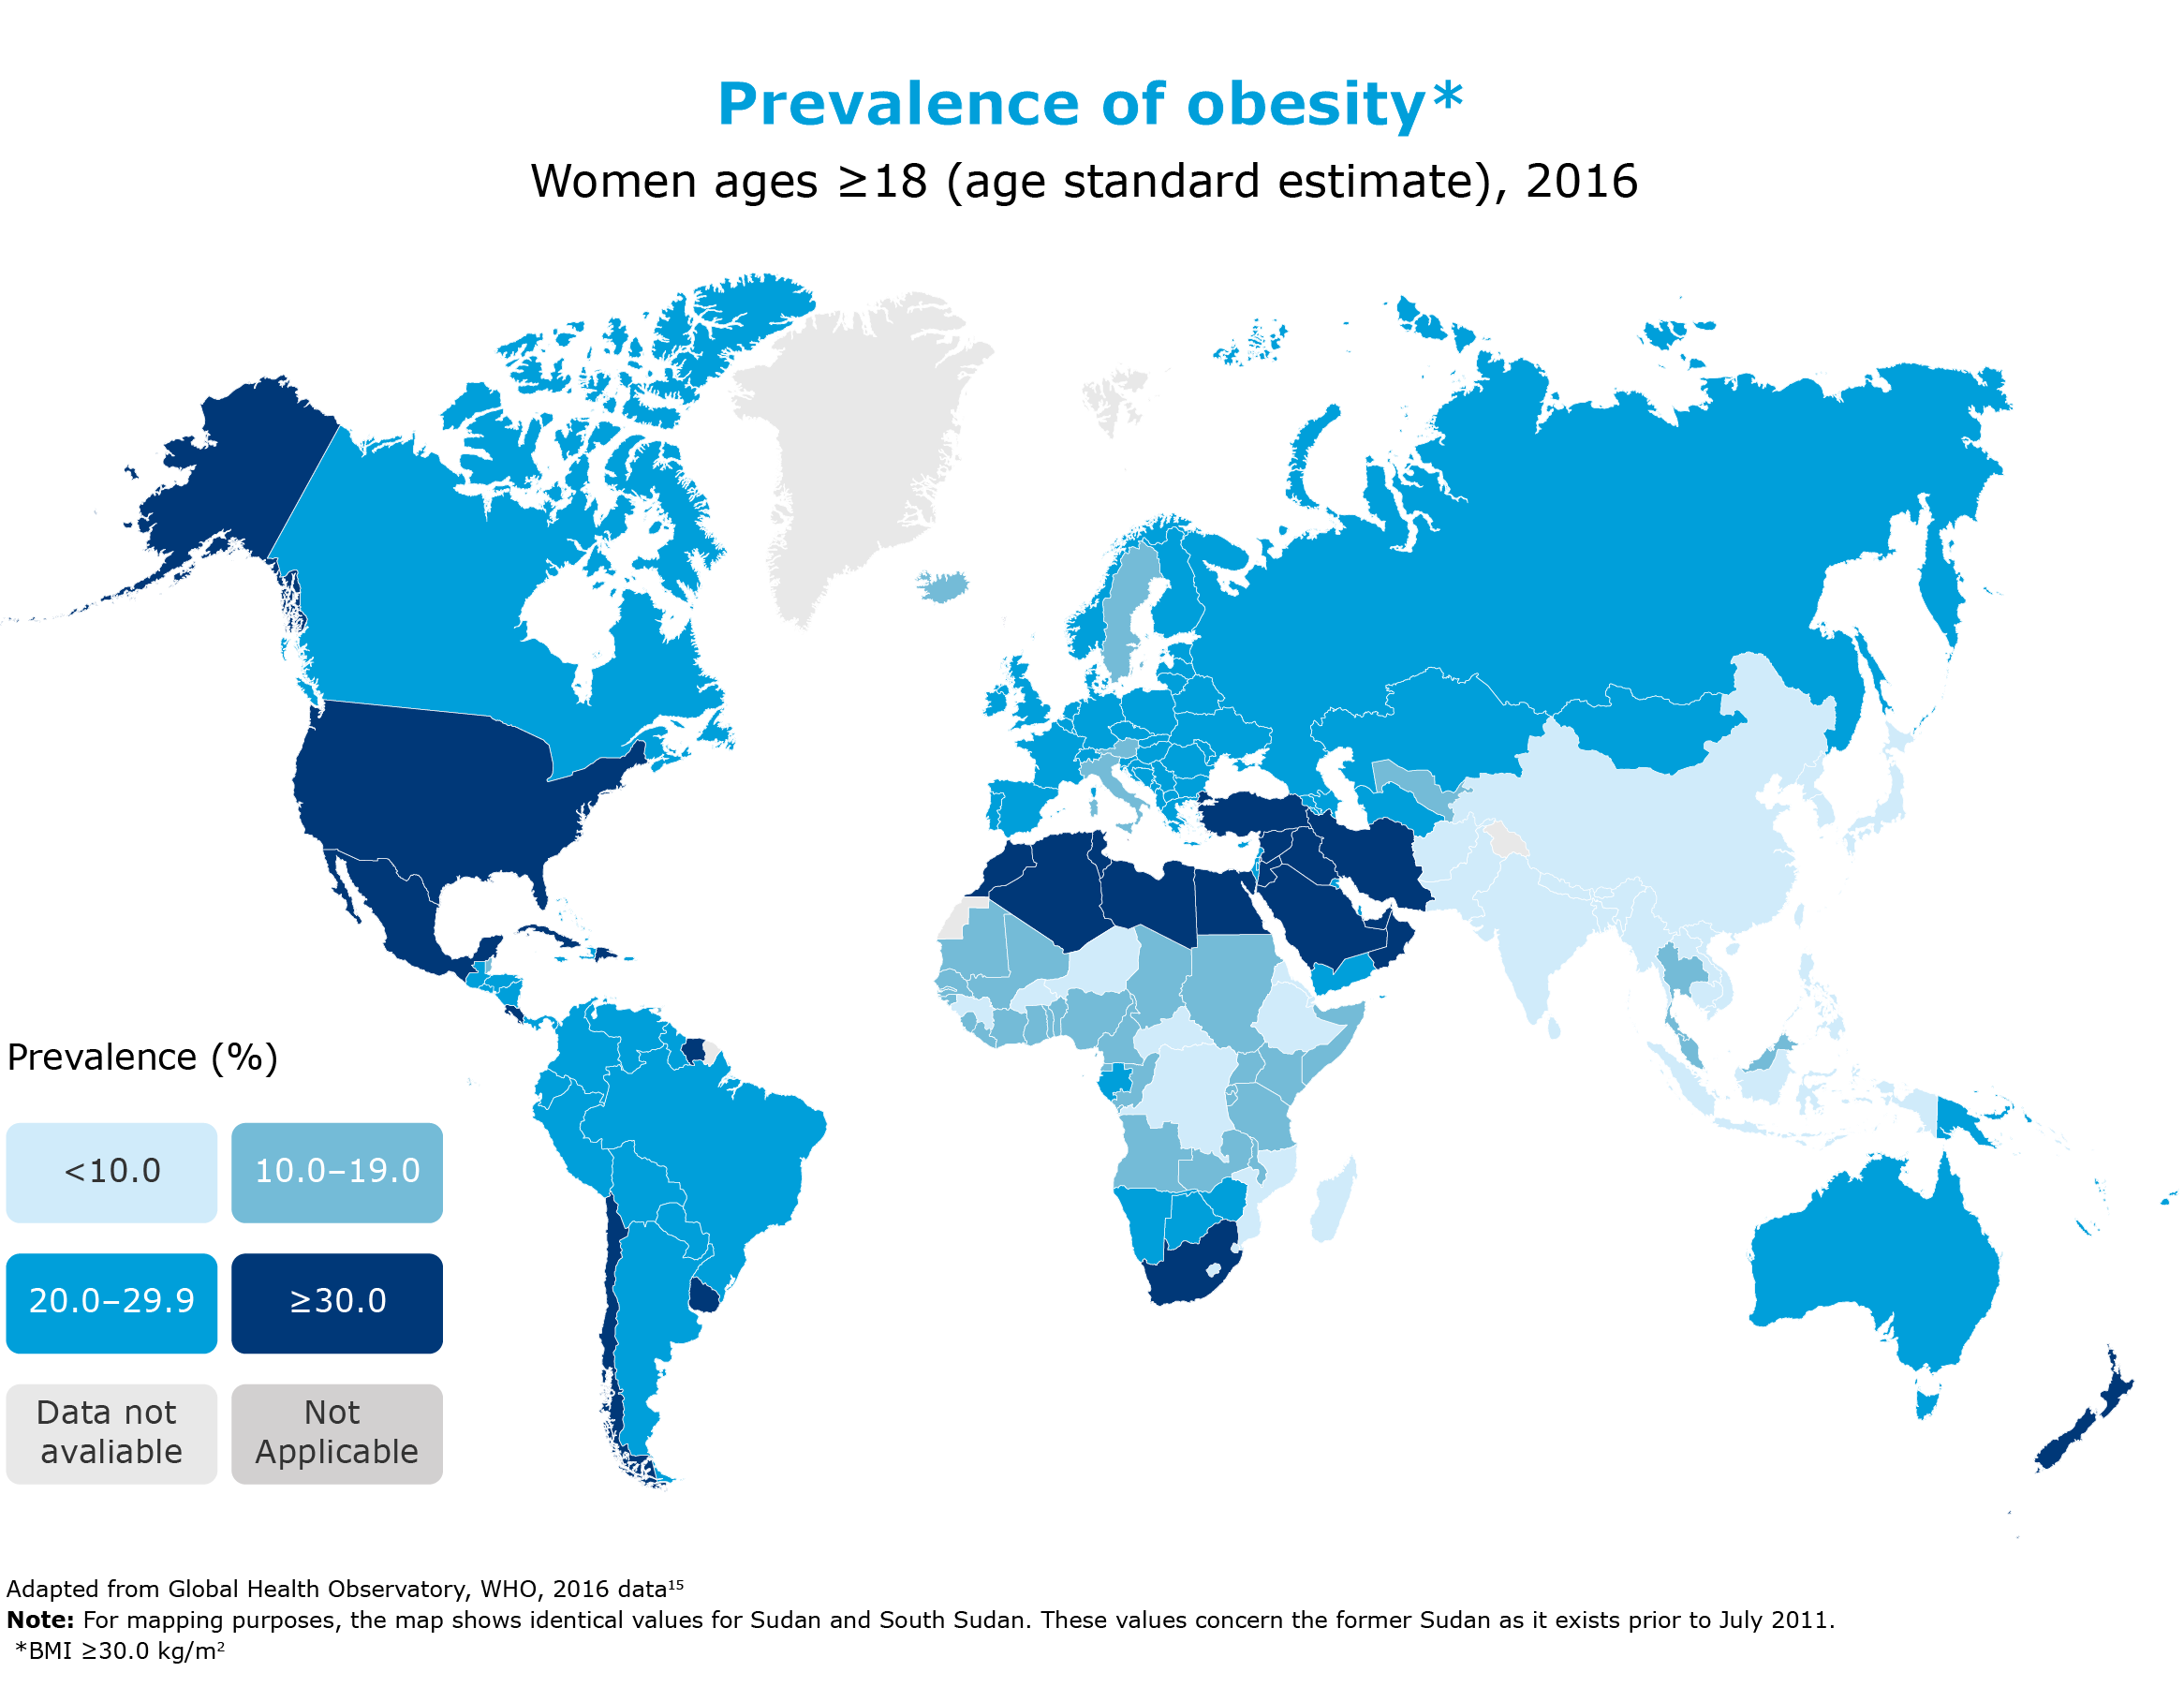 prevalence of obesity among women, >18, 2016